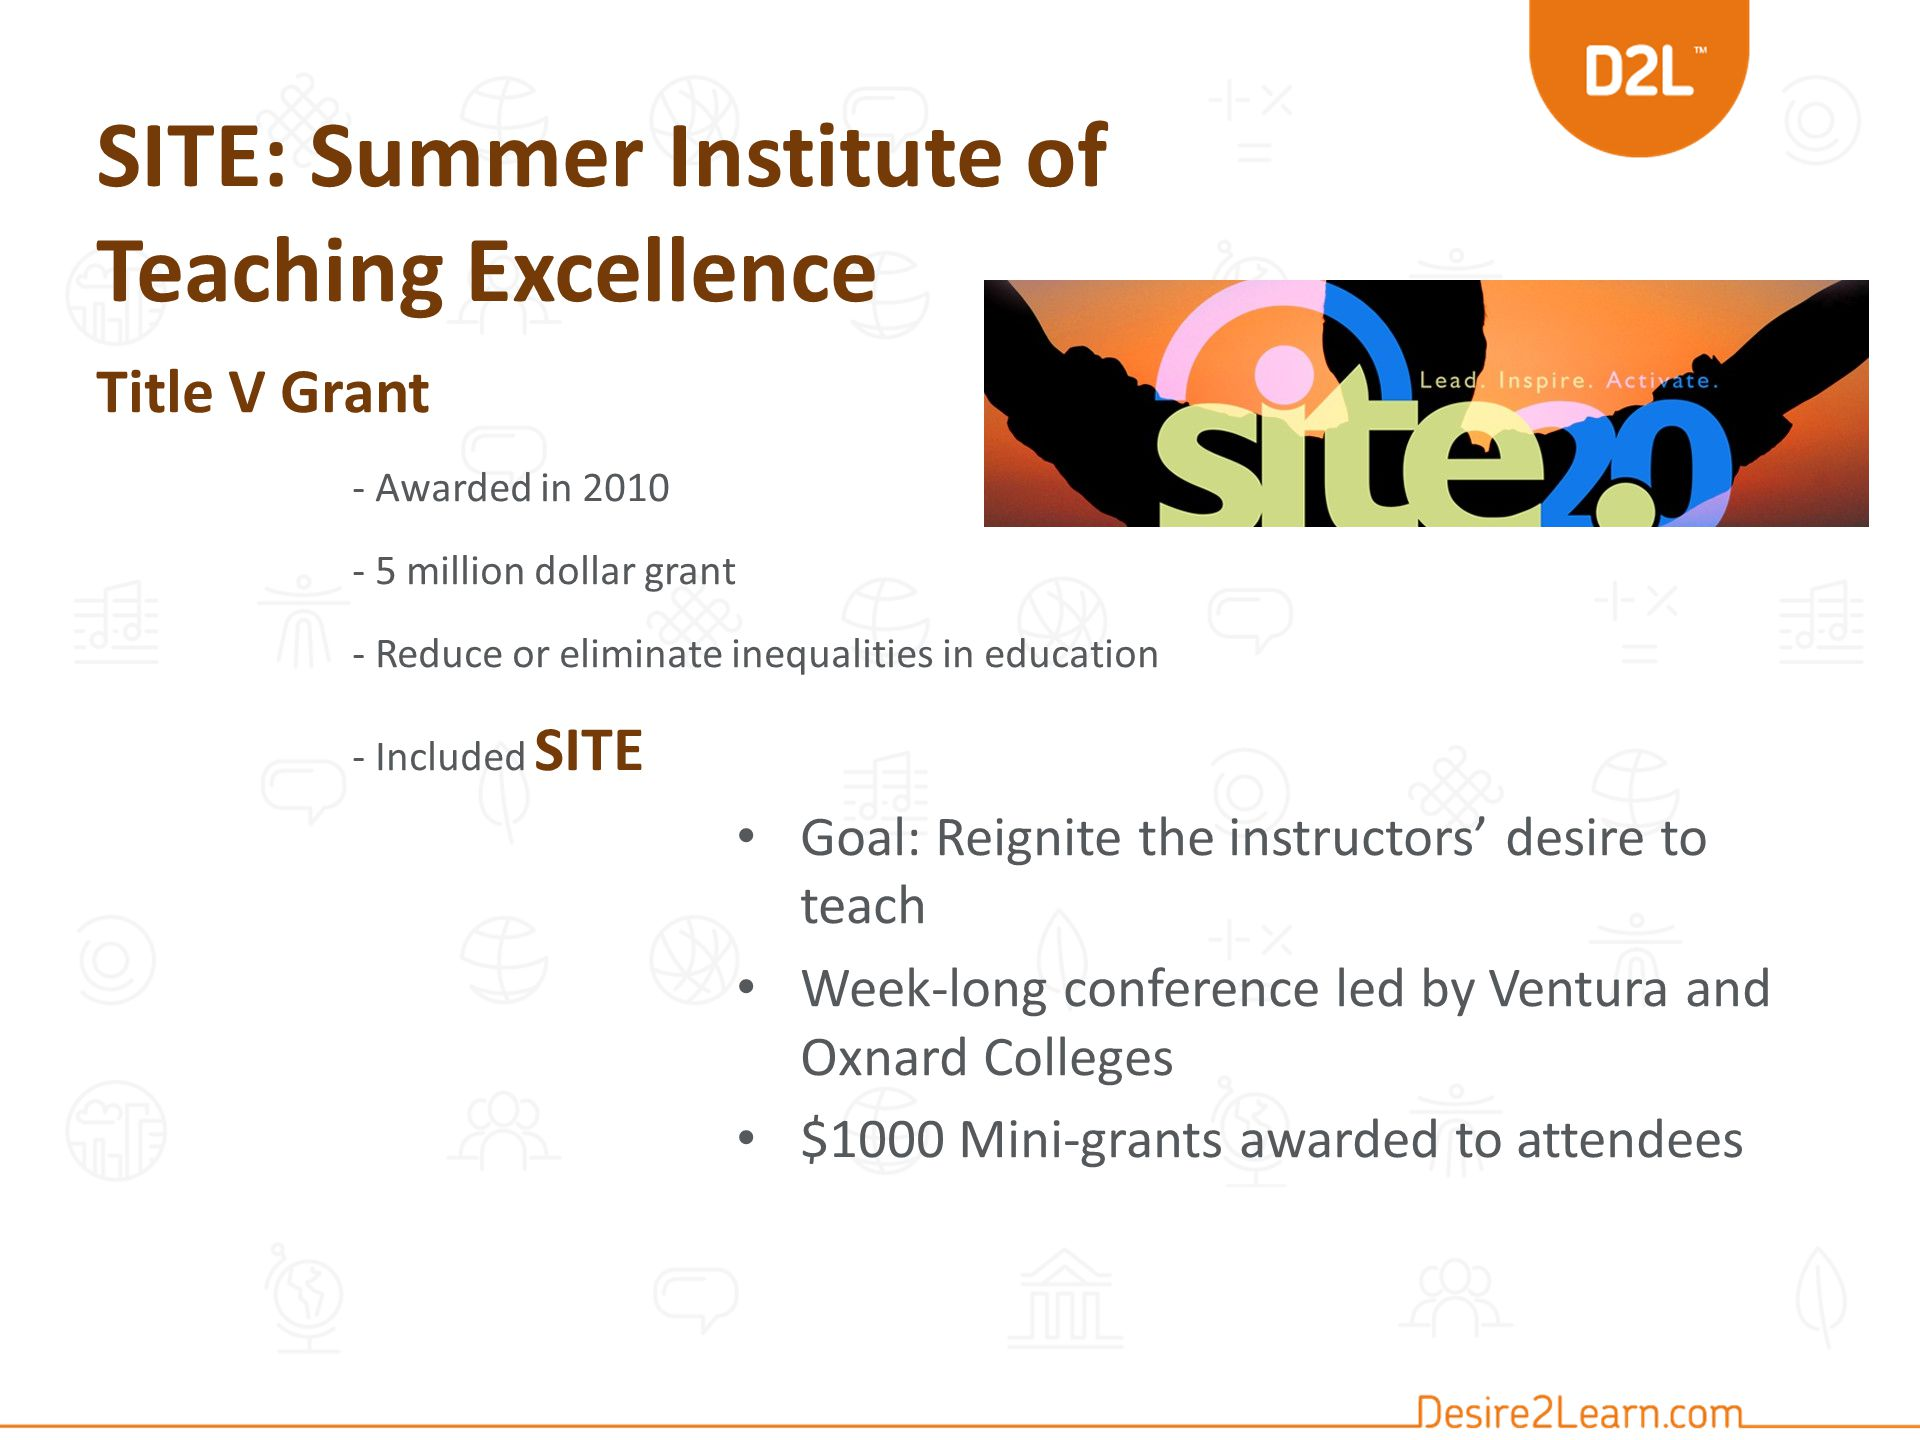 SITE: Summer Institute of Teaching Excellence Title V Grant - Awarded in 2010 - 5 million dollar grant - Reduce or eliminate inequalities in education - Included SITE Goal: Reignite the instructors' desire to teach Week-long conference led by Ventura and Oxnard Colleges $1000 Mini-grants awarded to attendees